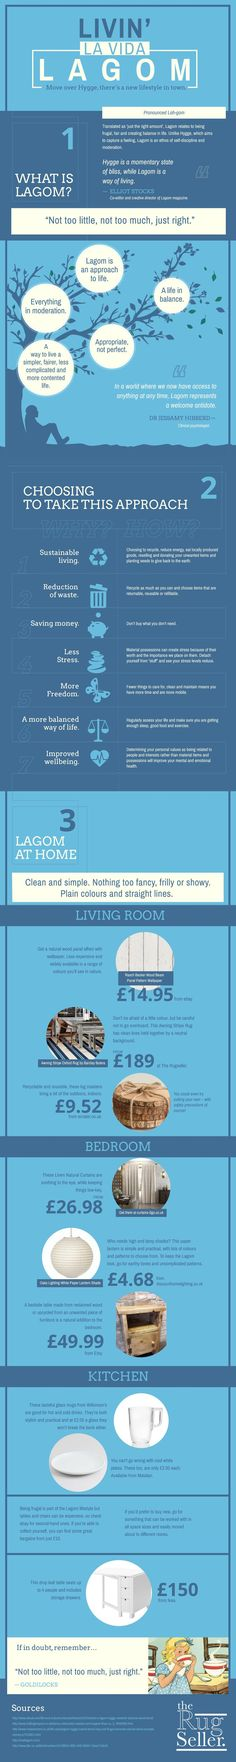 Living the Lagom life is about living a life of not having a lot, but at the same time not having too little either. It's about having just the appropriate amount. If you do not understand what I am talking about, this infographic is for you. It explains what exactly a Lagom lifestyle means and what you have to do in order to be able to live it. Here is the ultimate guide on how to live the Lagom life: Infographic by – The Rug Seller